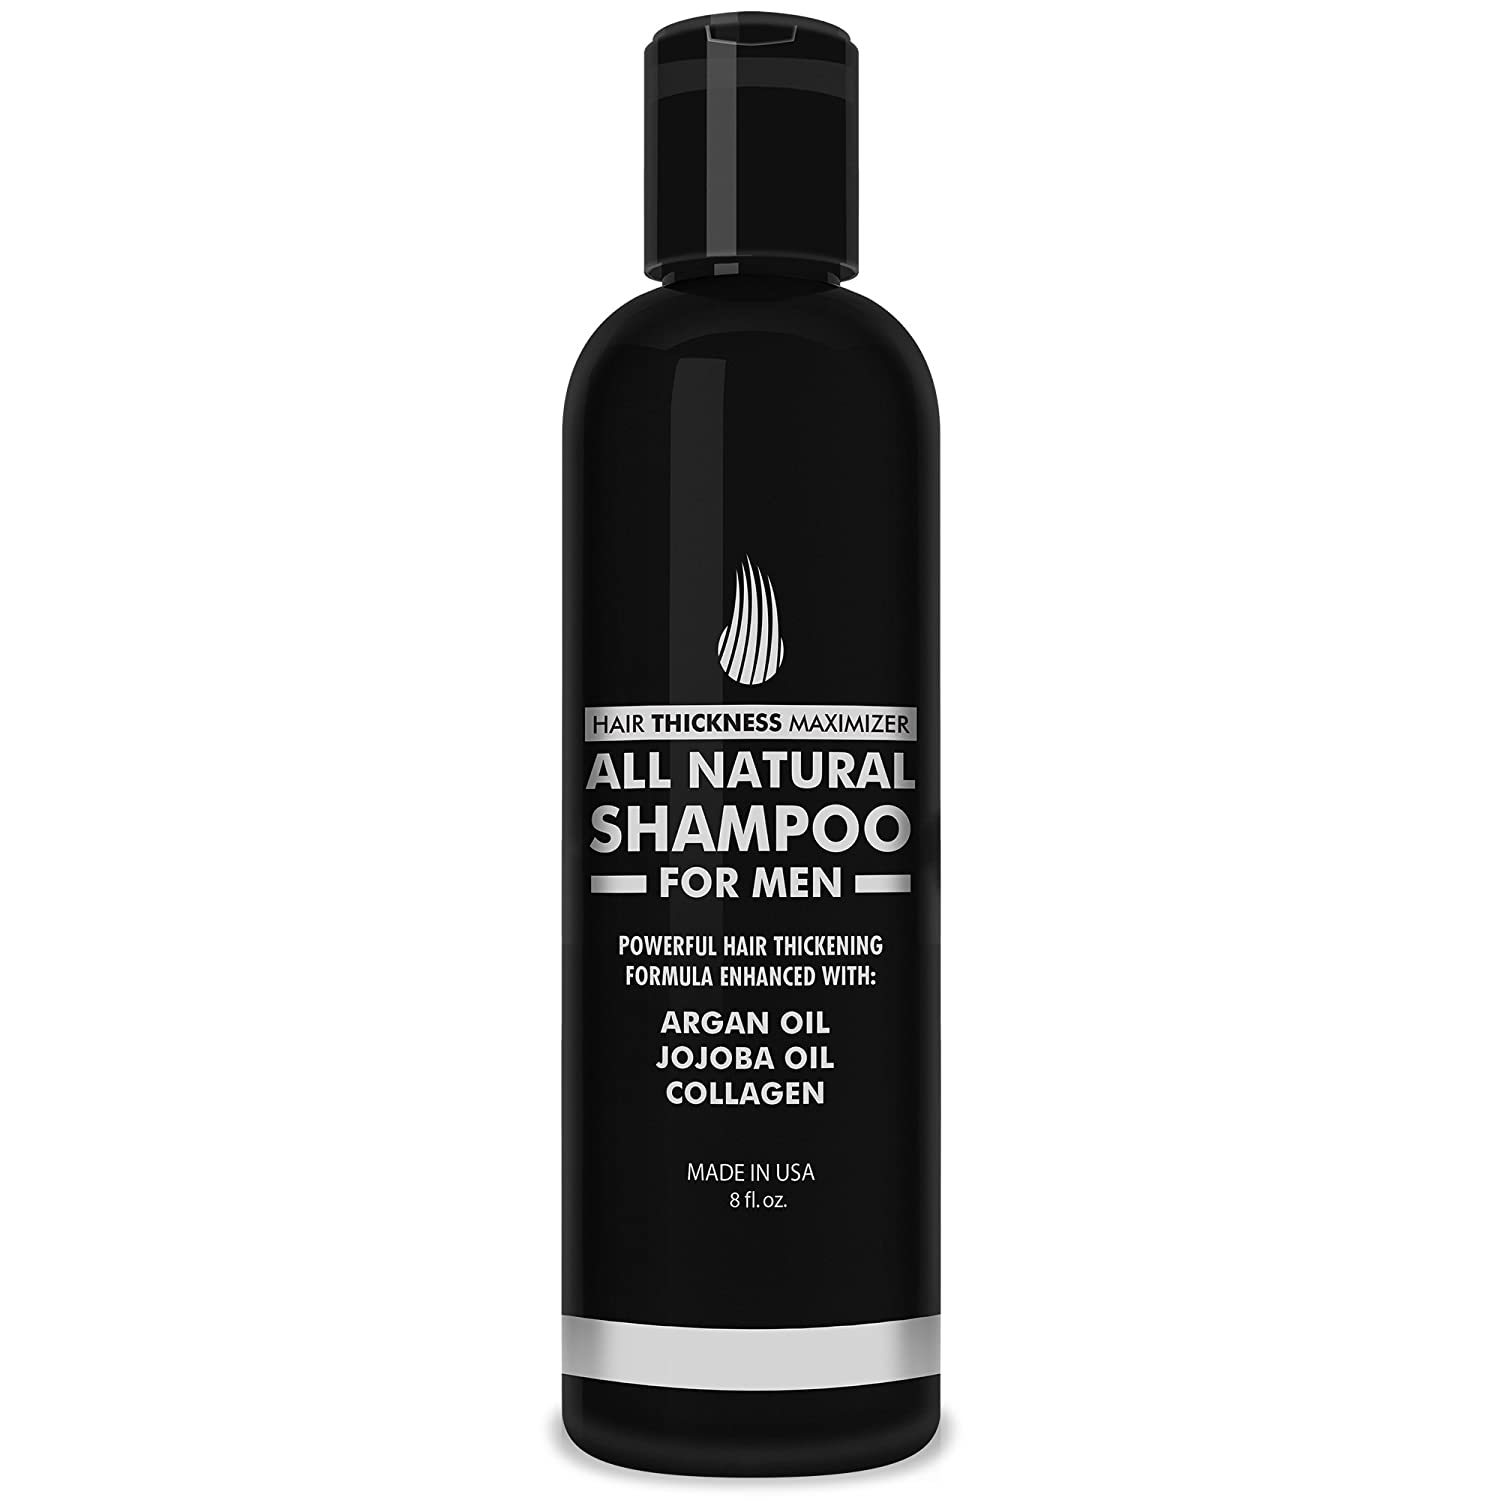 Hair Growth Shampoo for Men - Hair Thickening Shampoo by Hair Thickness Maximizer. Best Treatment for Thinning/Hair Loss. Paraben Free with Argan Oil